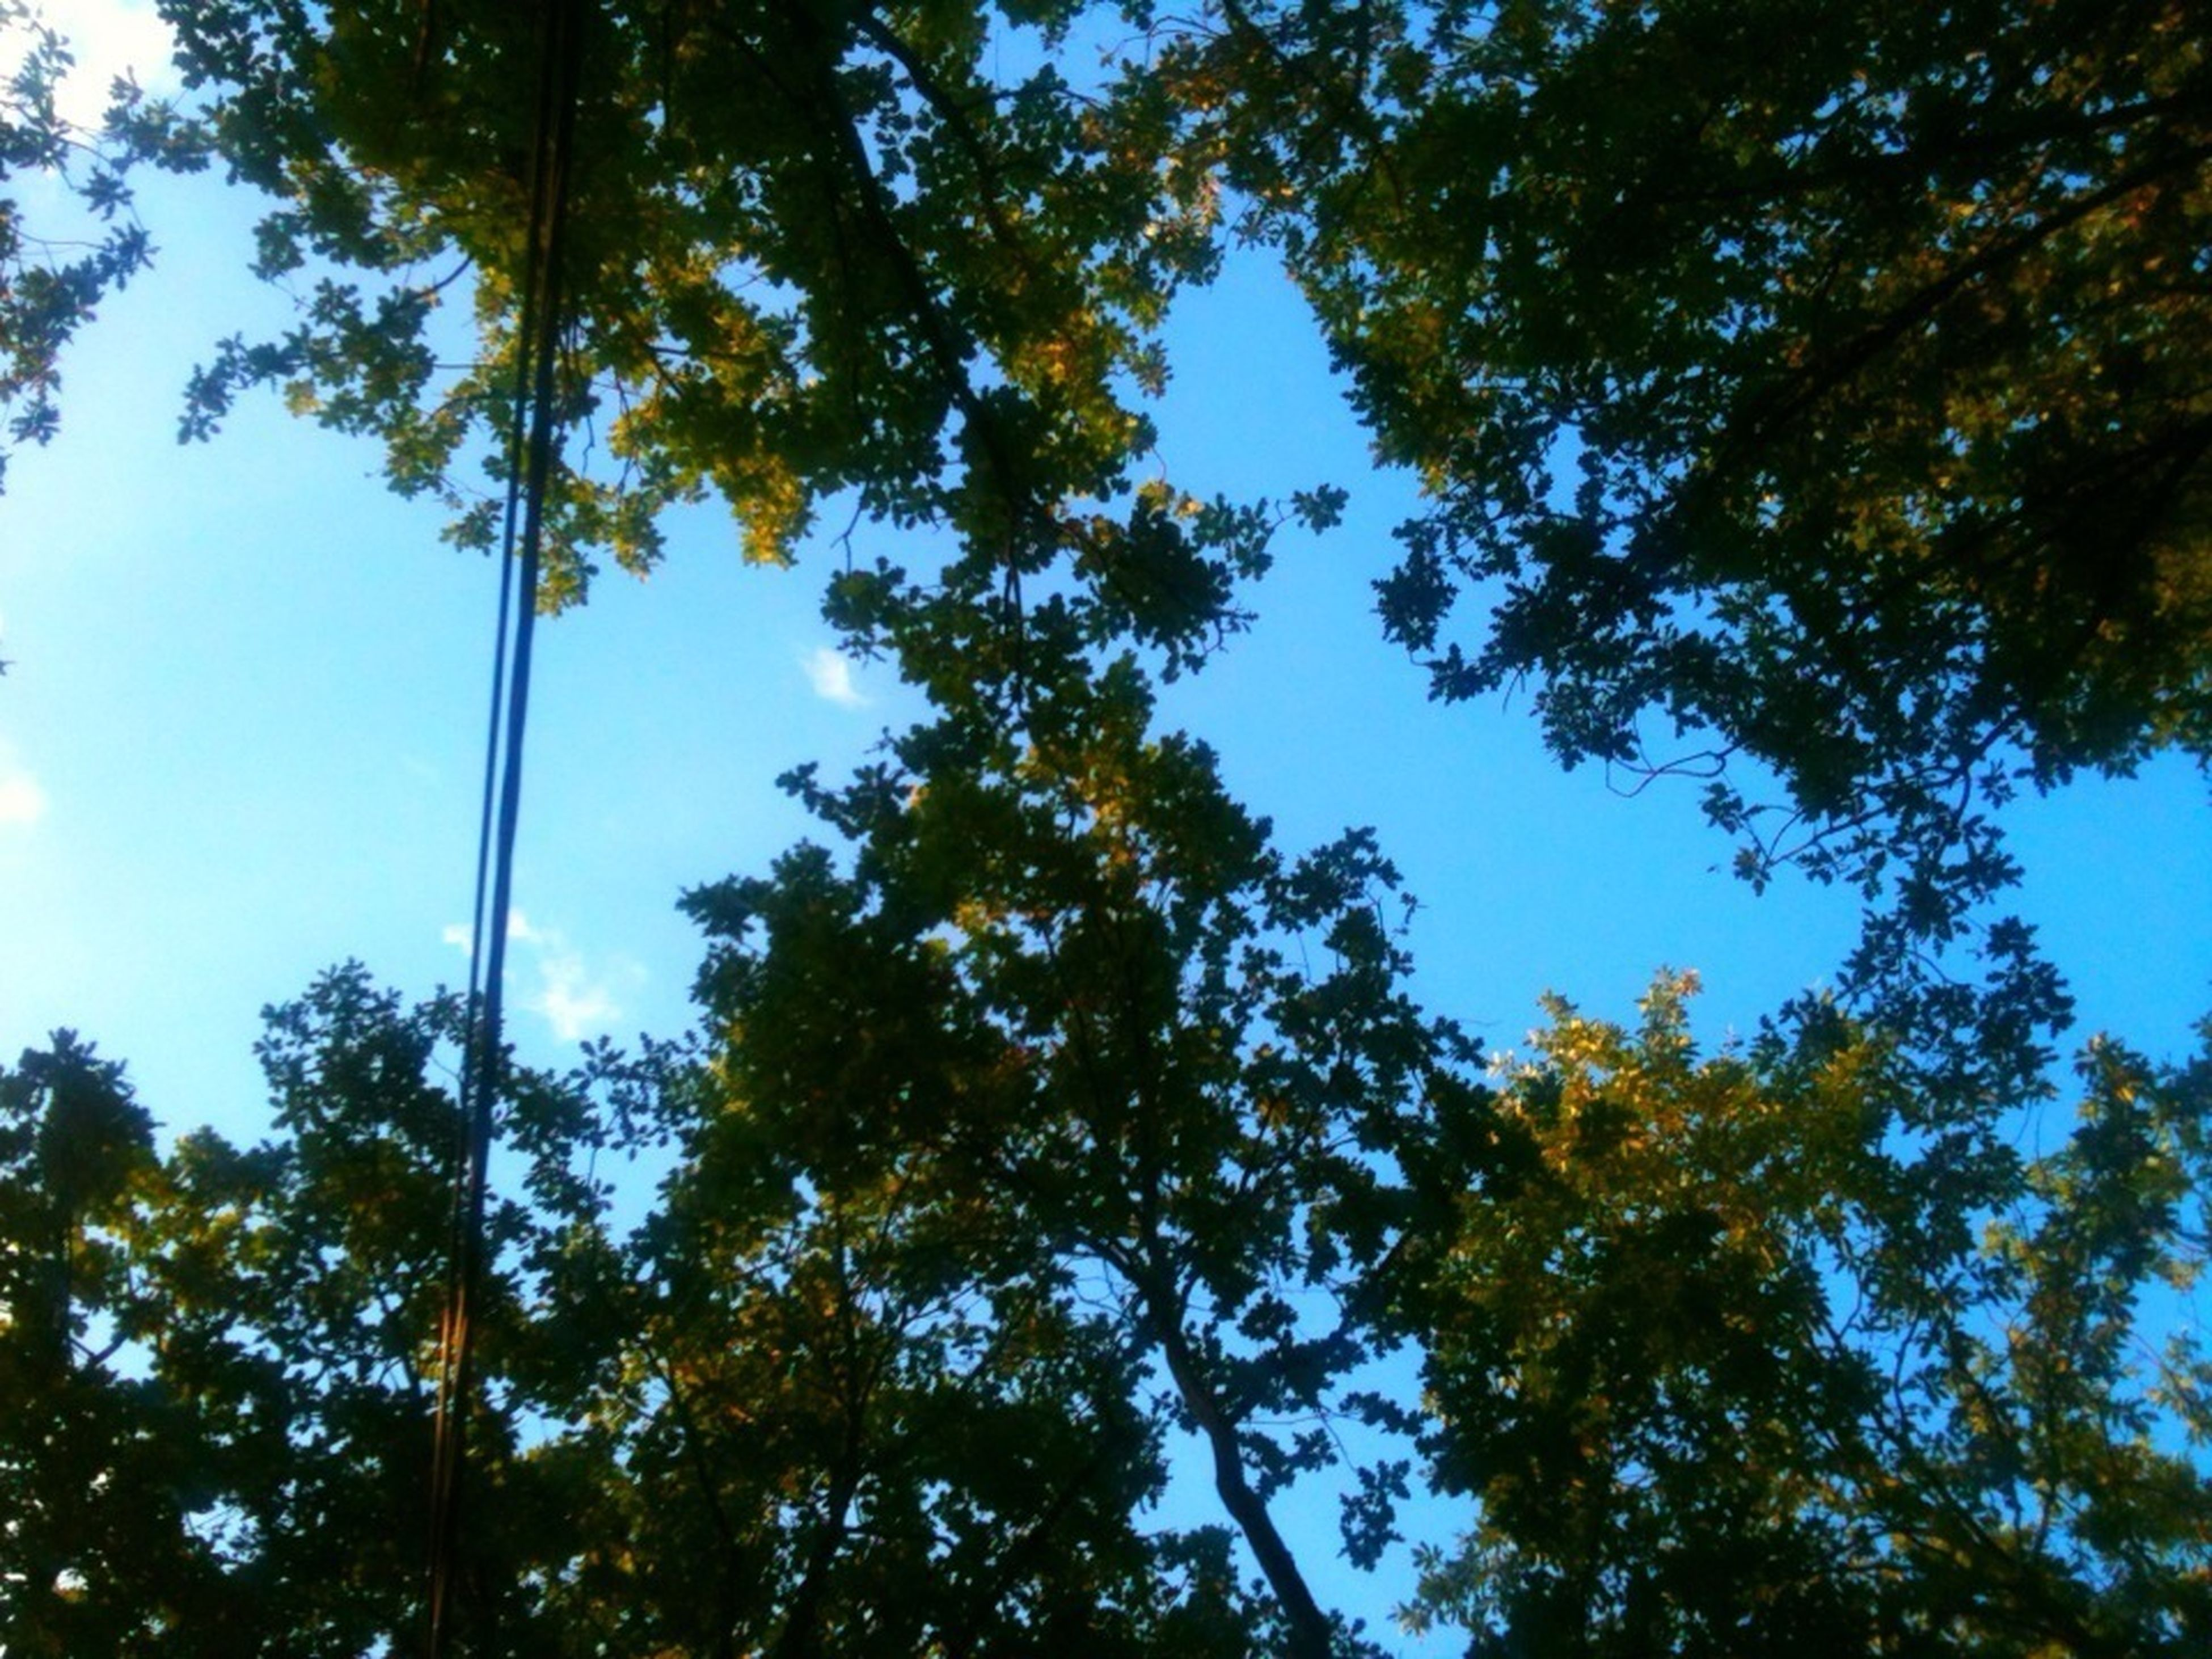 tree, low angle view, growth, branch, nature, clear sky, tranquility, beauty in nature, sky, blue, scenics, tree trunk, day, leaf, outdoors, green color, no people, sunlight, tranquil scene, treetop